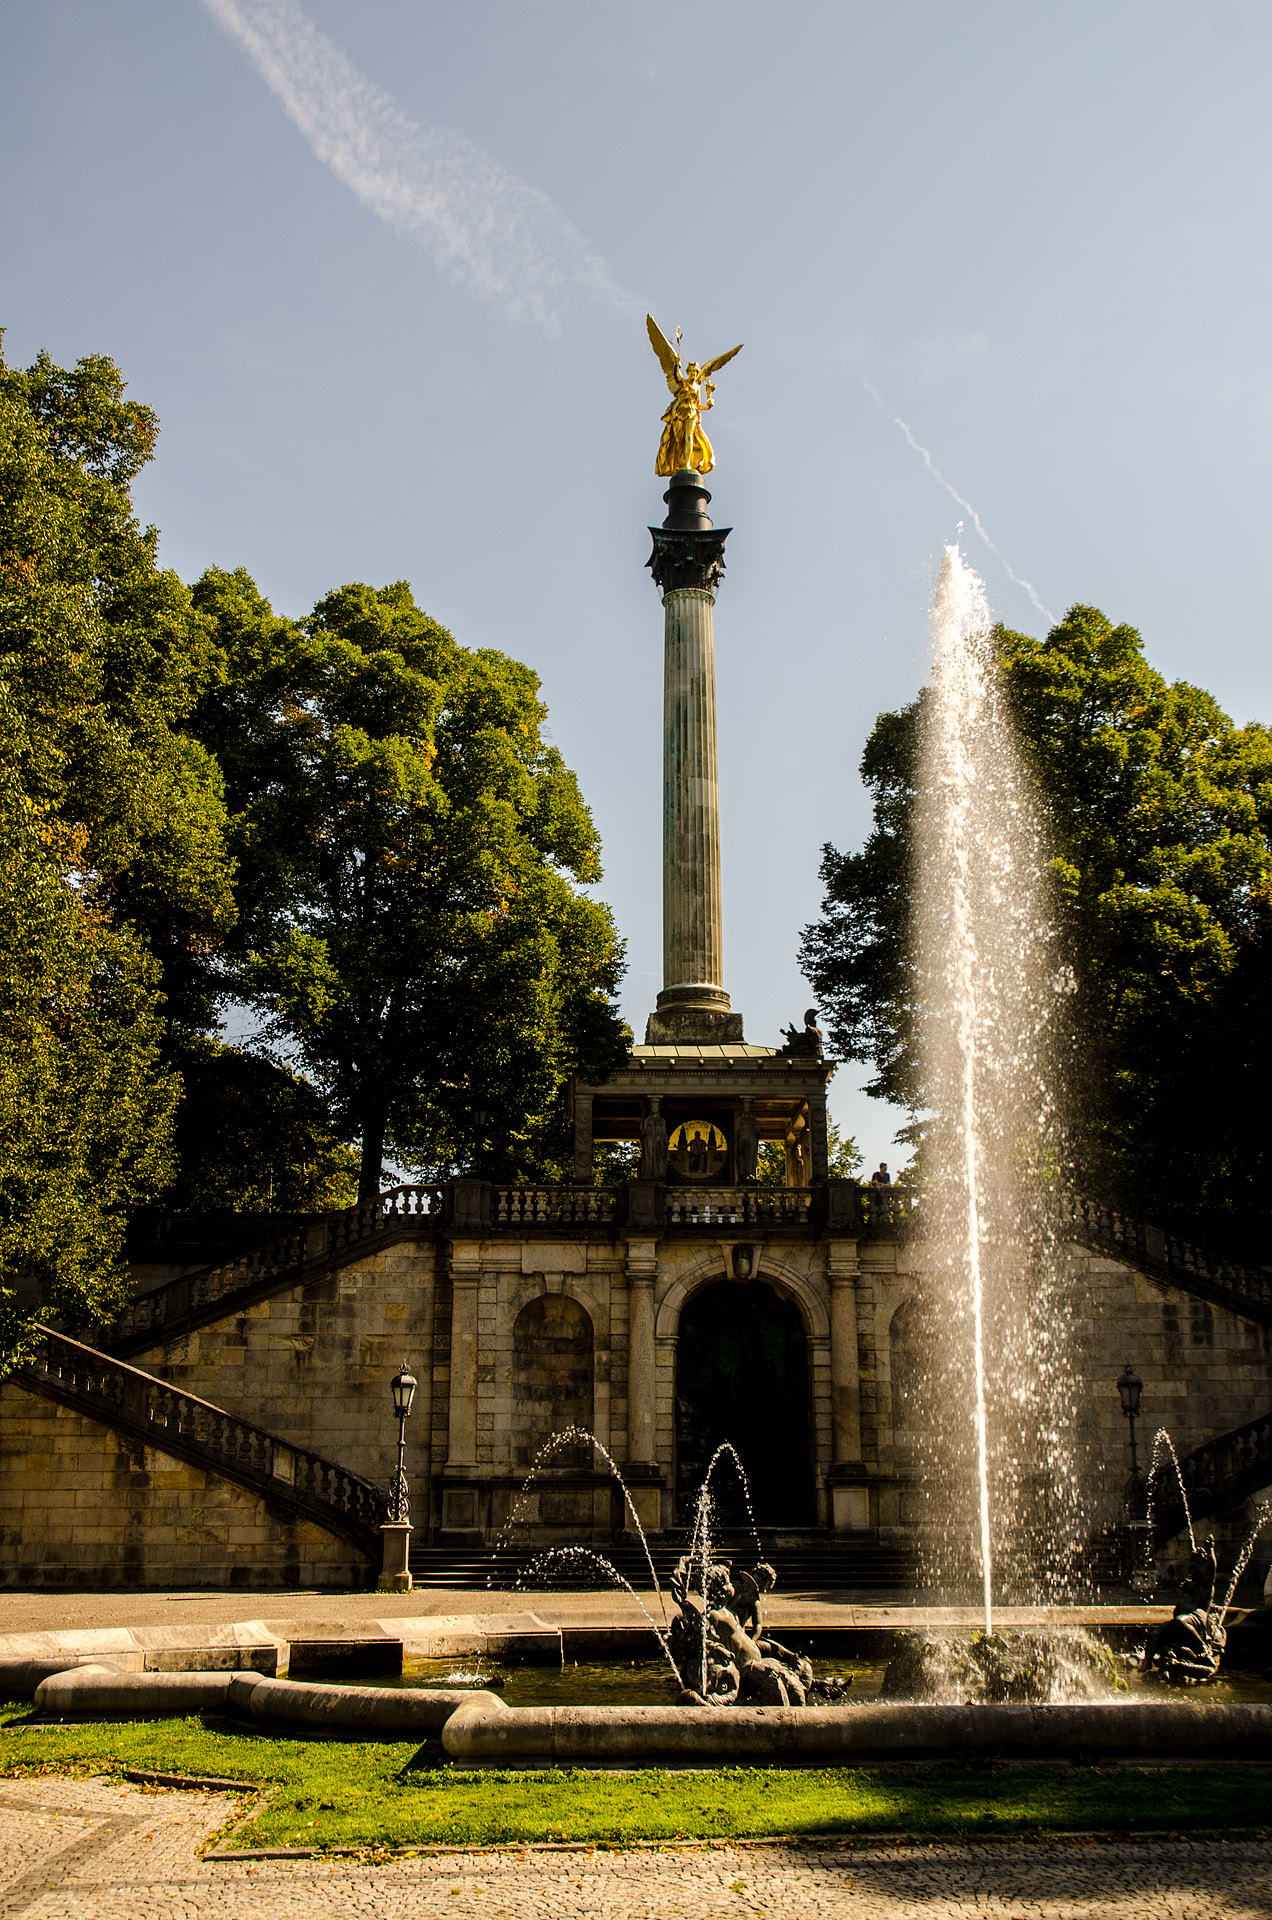 Friedensengel (Angel of Peace)